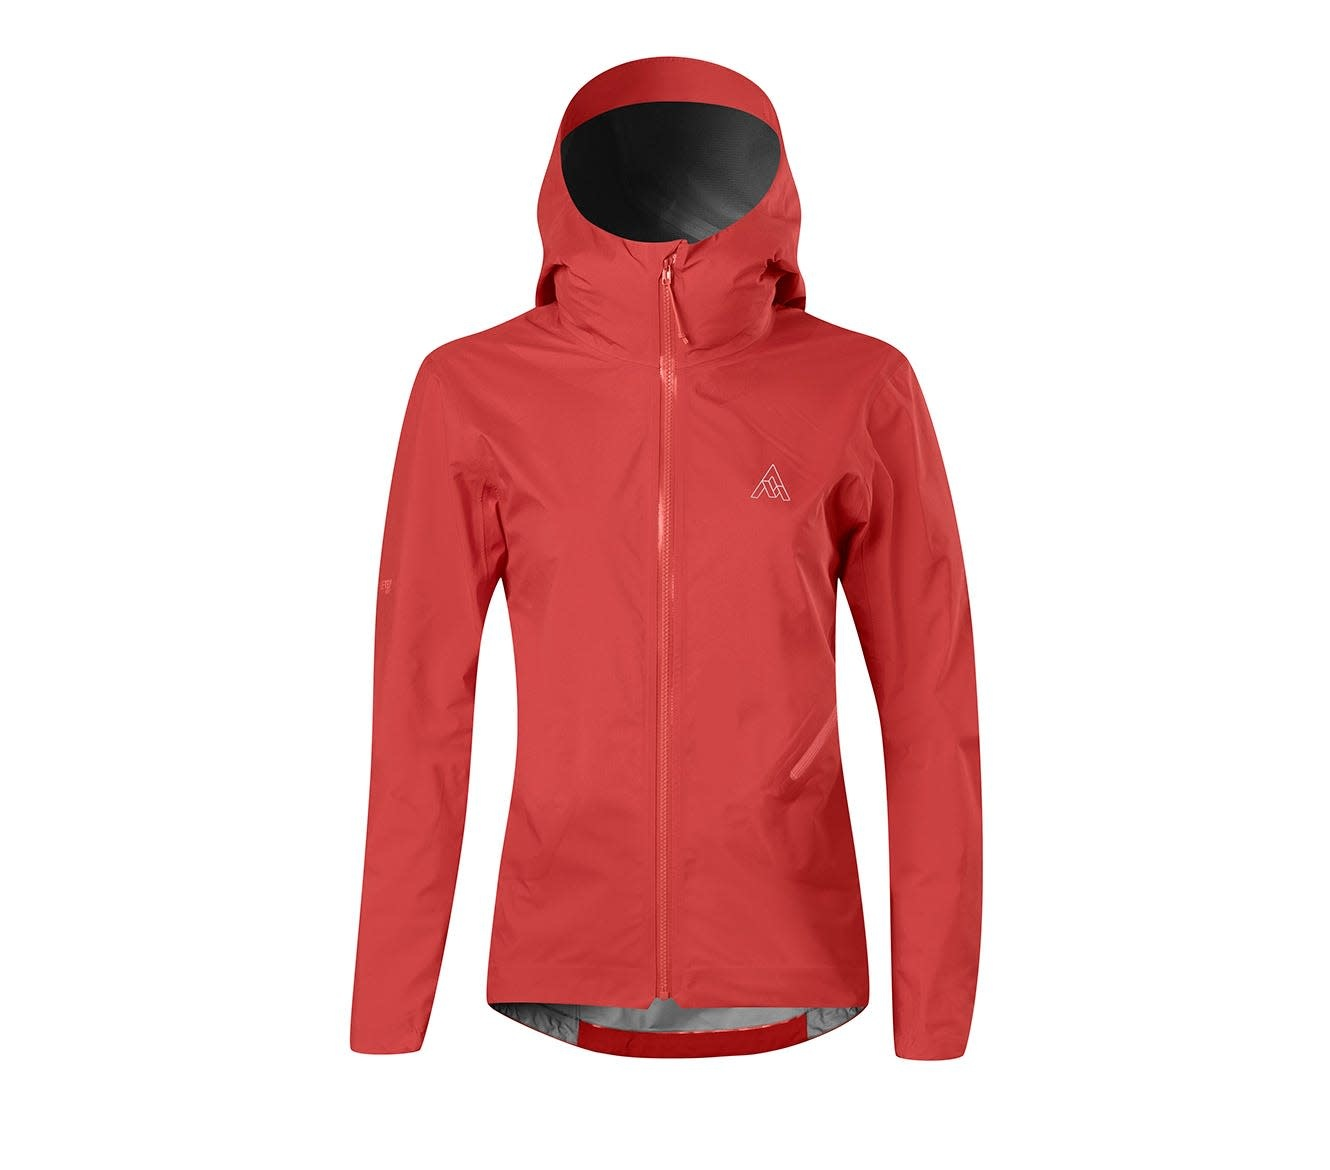 7 Mesh, Women's Copilot Jacket, Alpen Glow (SM)